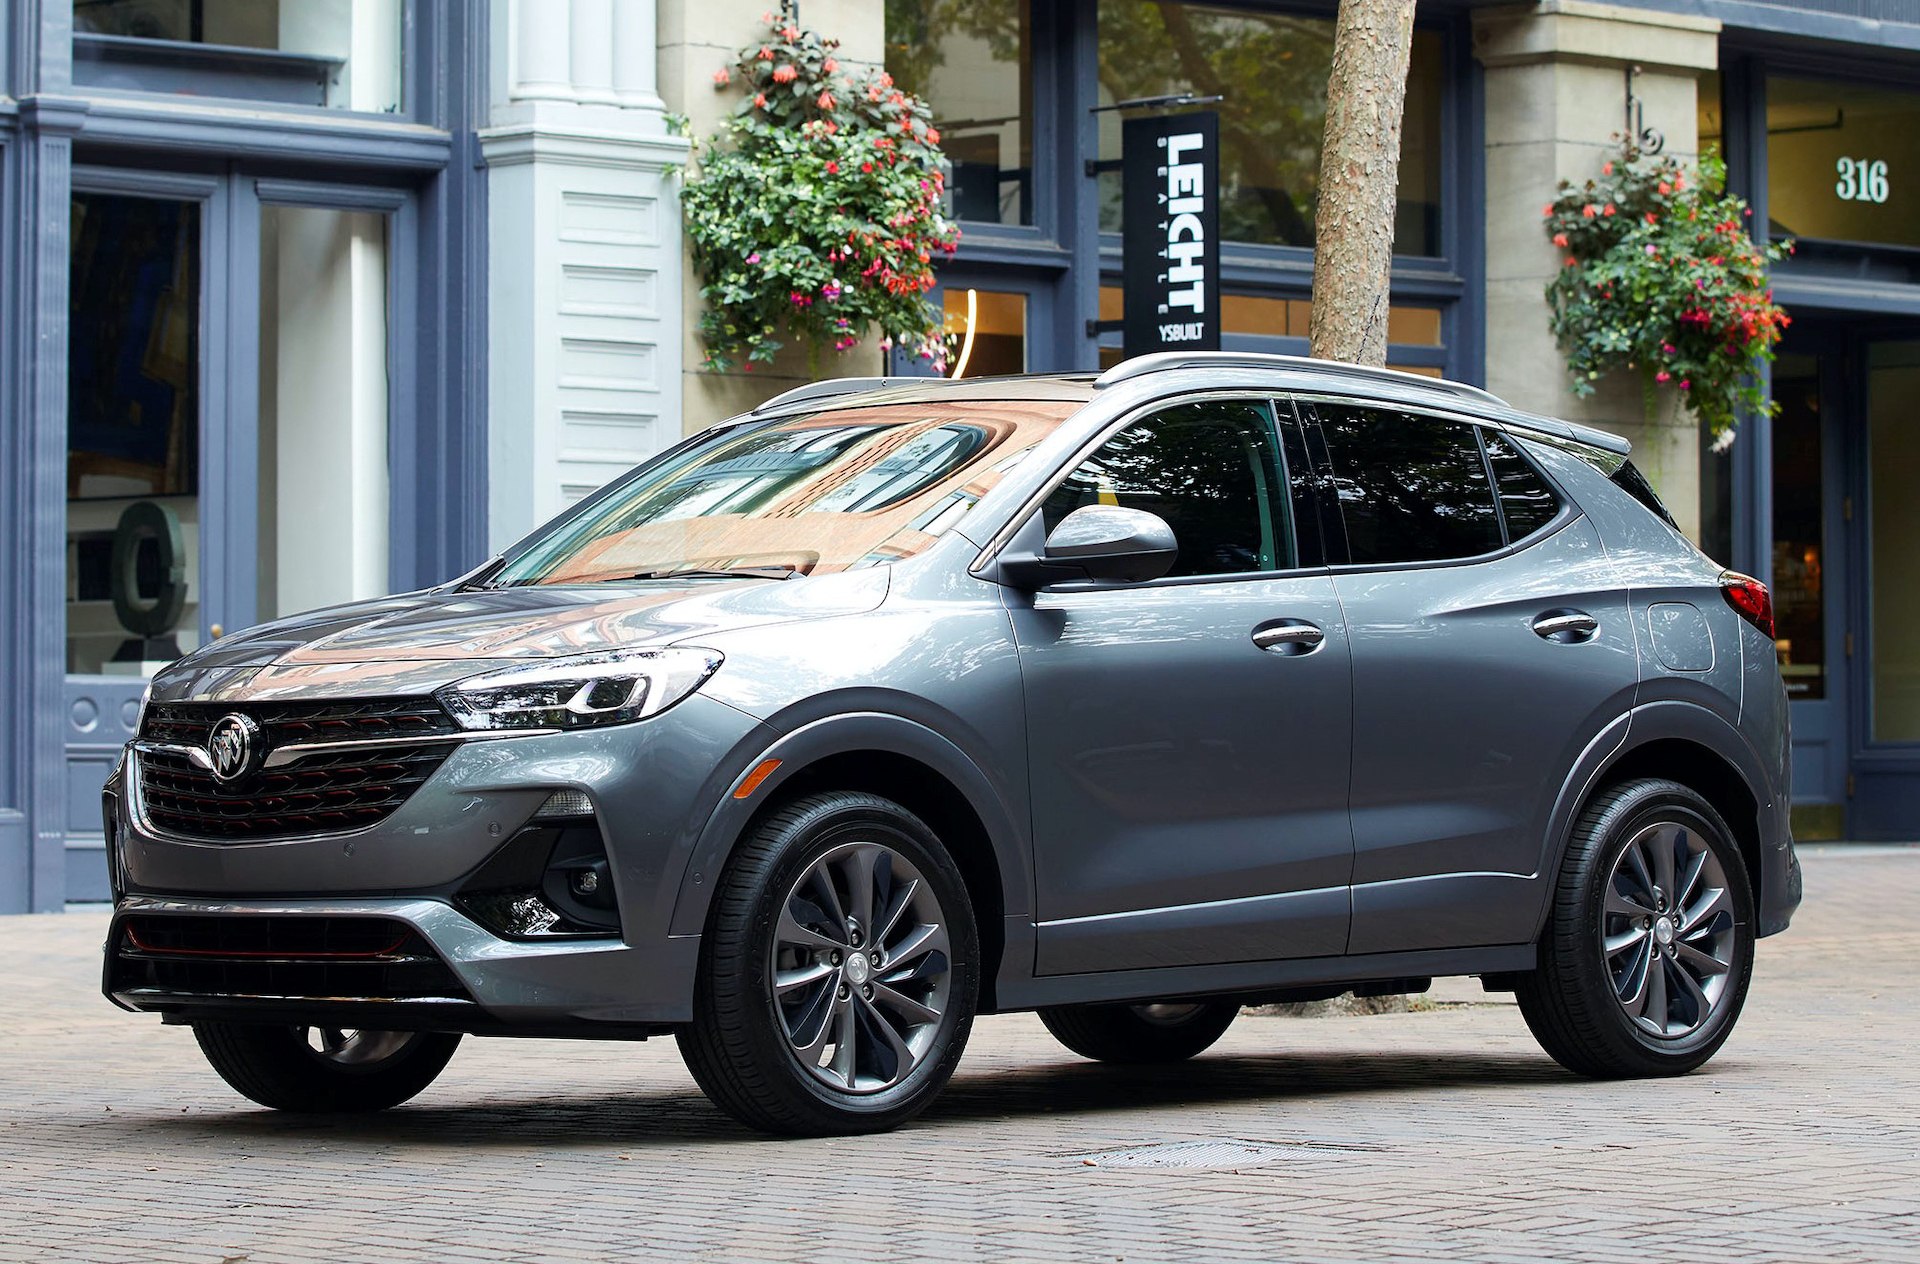 2021 Buick Encore Review, Ratings, Specs, Prices, And Photos 2021 Buick Encore Msrp, Models, Manual